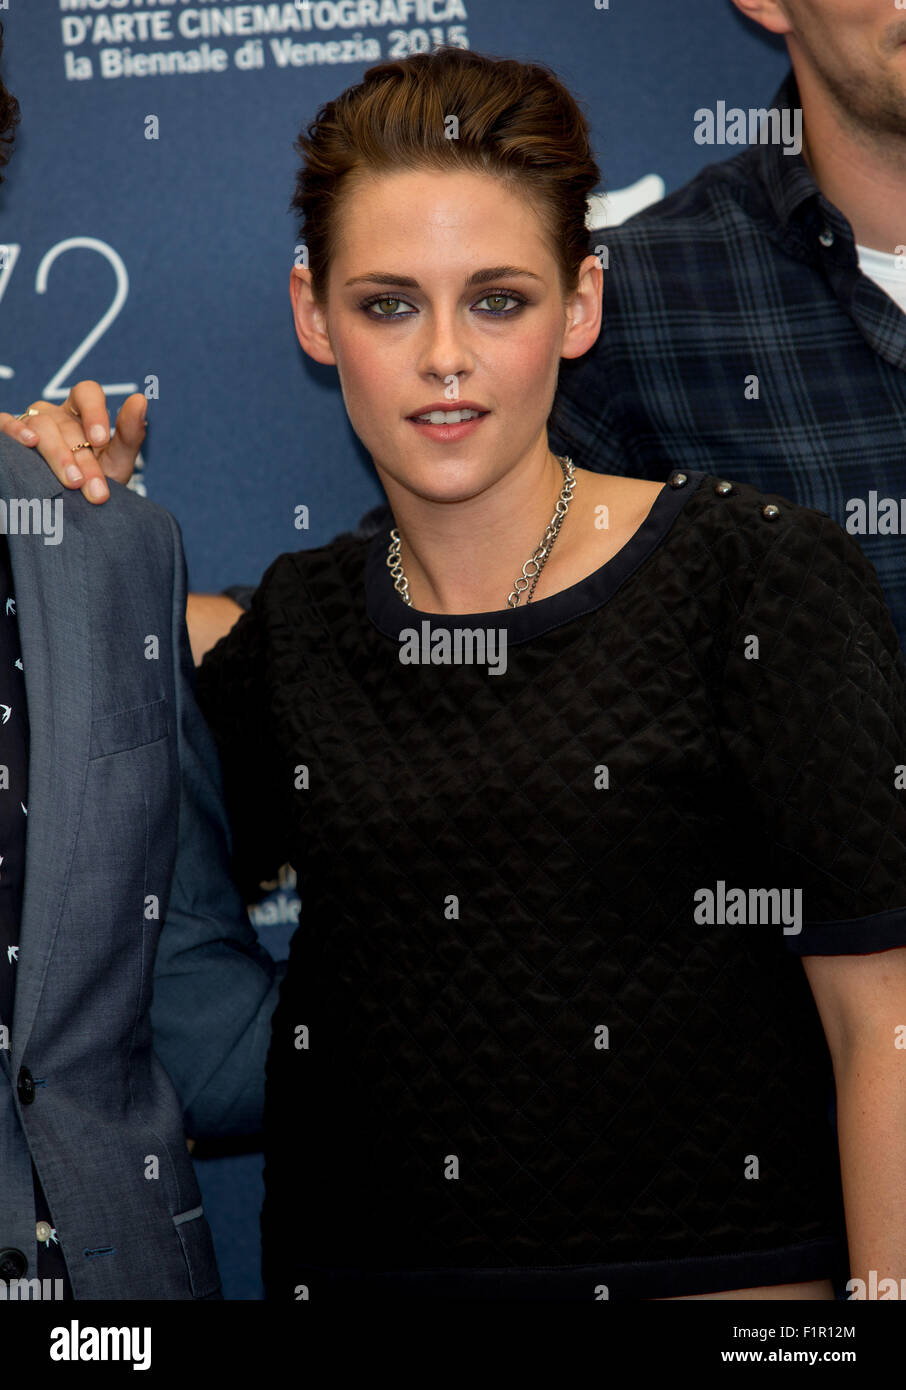 Venice, Italy. 5th September, 2015. Actress Kristen Stewart poses at the photocall of Equals during the 72nd Venice Stock Photo